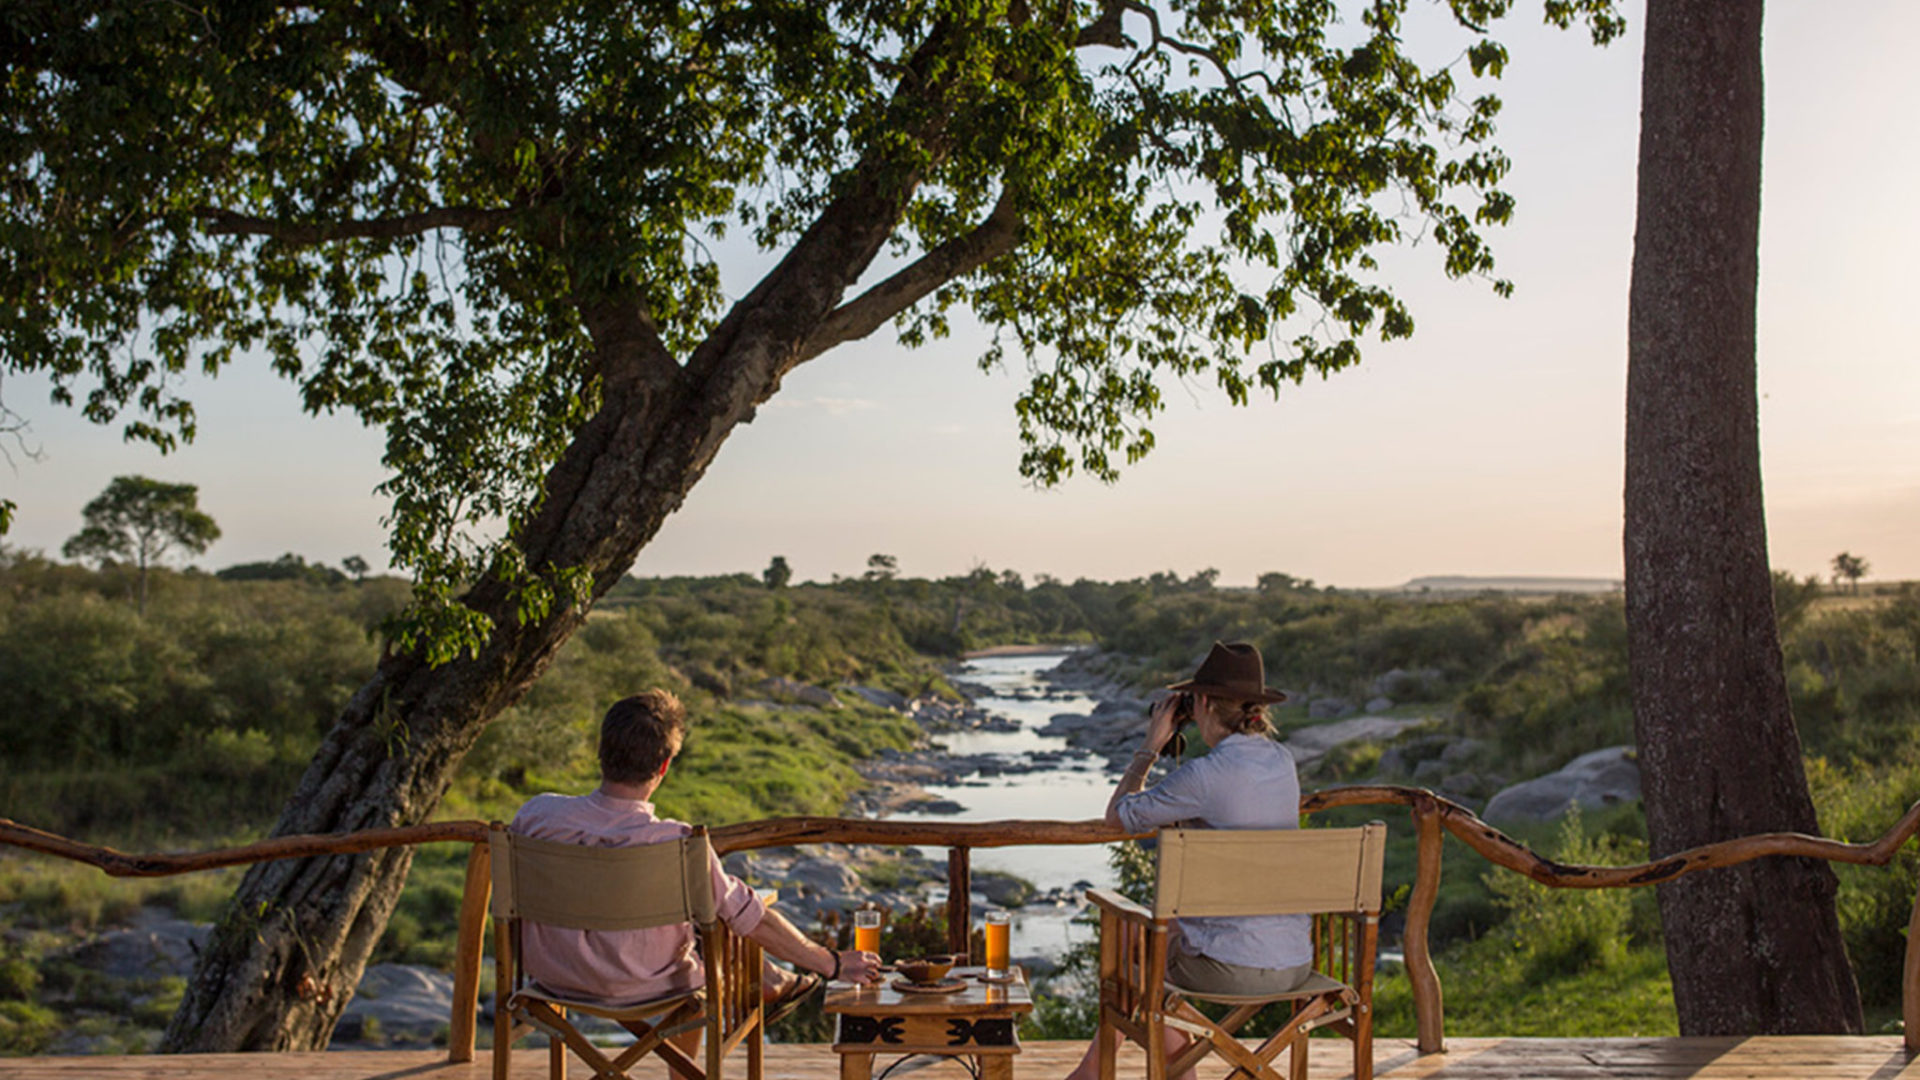 rekero camp guests enjoying views from the deck